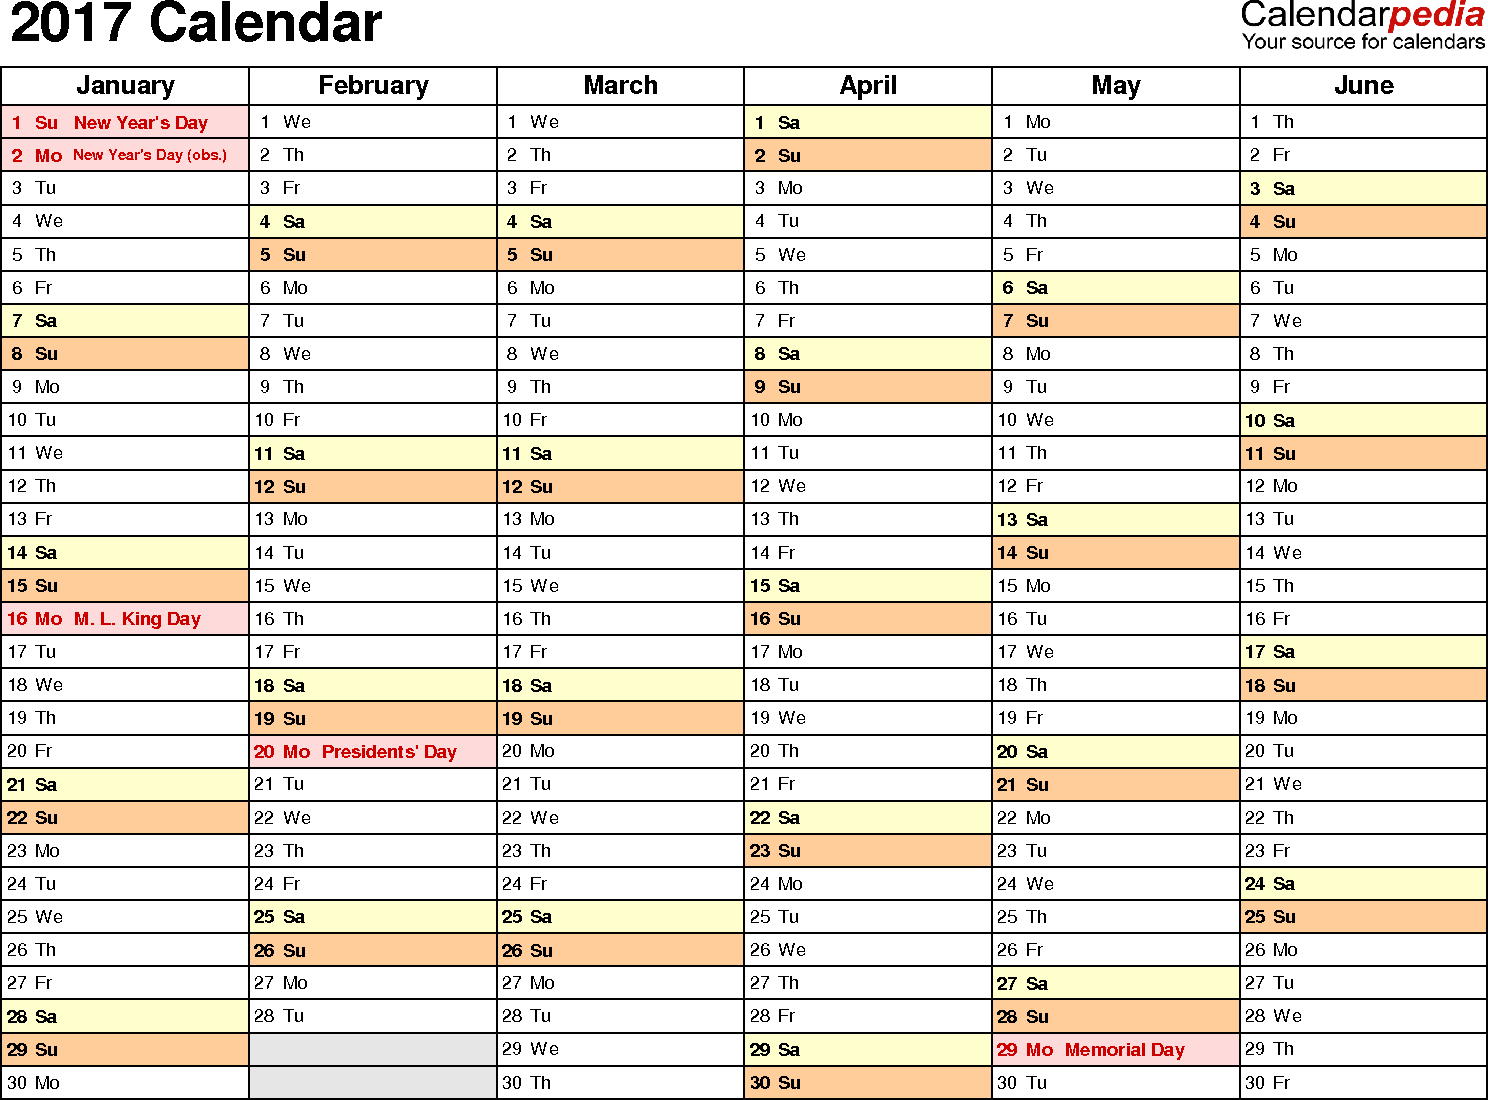 Ediblewildsus  Terrific  Calendar  Download  Free Printable Excel Templates Xls With Remarkable Template   Calendar For Excel Months Horizontally  Pages Landscape Orientation With Awesome Excel Bar Graphs Also Repeat Formula In Excel In Addition Sql Server Management Studio Import Excel And Micorosoft Excel As Well As Excel Formula For Percentage Of Total Additionally Sql Import Excel From Calendarpediacom With Ediblewildsus  Remarkable  Calendar  Download  Free Printable Excel Templates Xls With Awesome Template   Calendar For Excel Months Horizontally  Pages Landscape Orientation And Terrific Excel Bar Graphs Also Repeat Formula In Excel In Addition Sql Server Management Studio Import Excel From Calendarpediacom